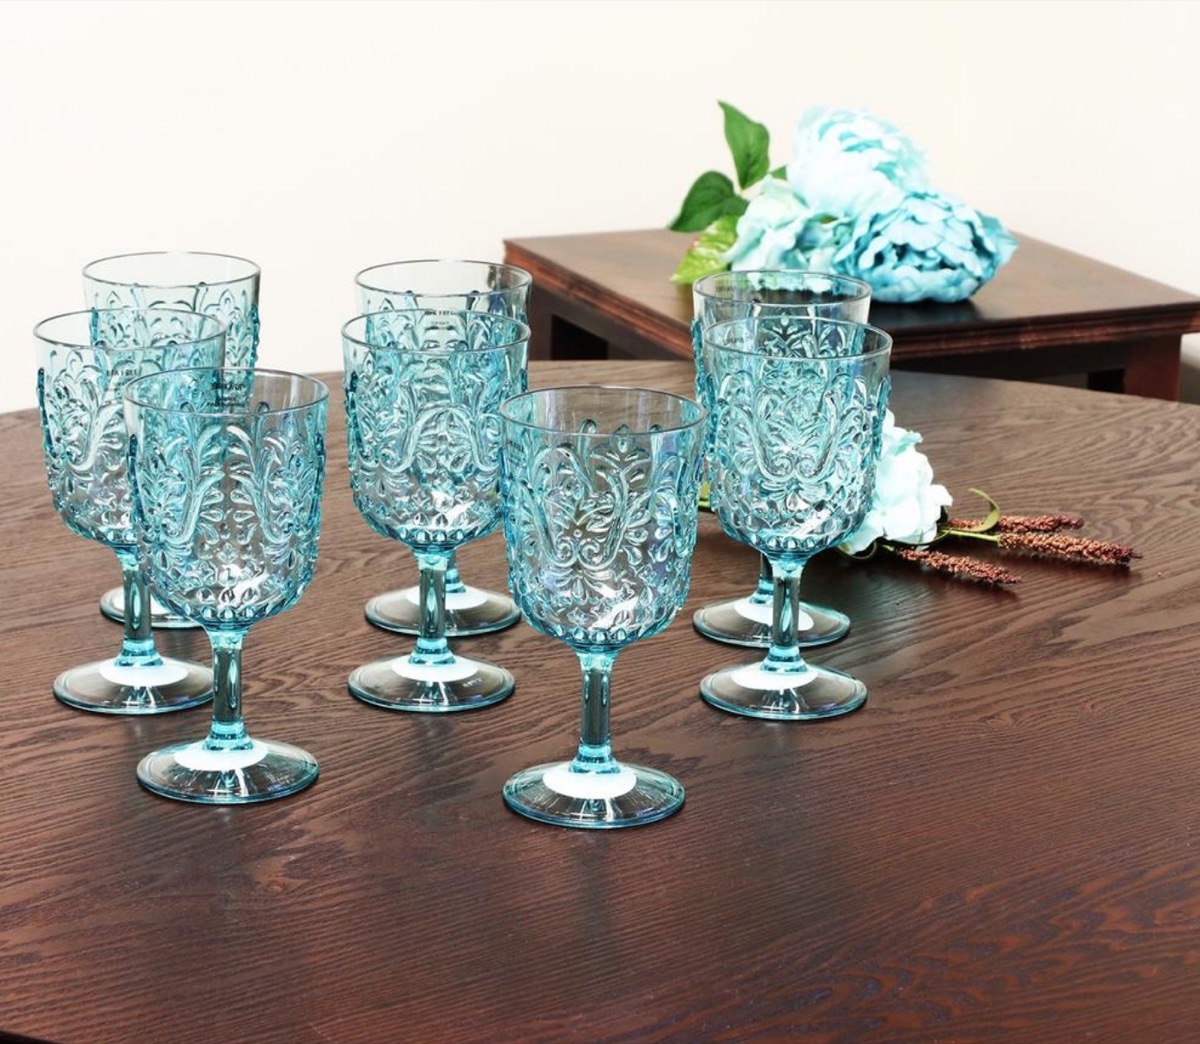 acrylic teal wine goblets, picnic essentials